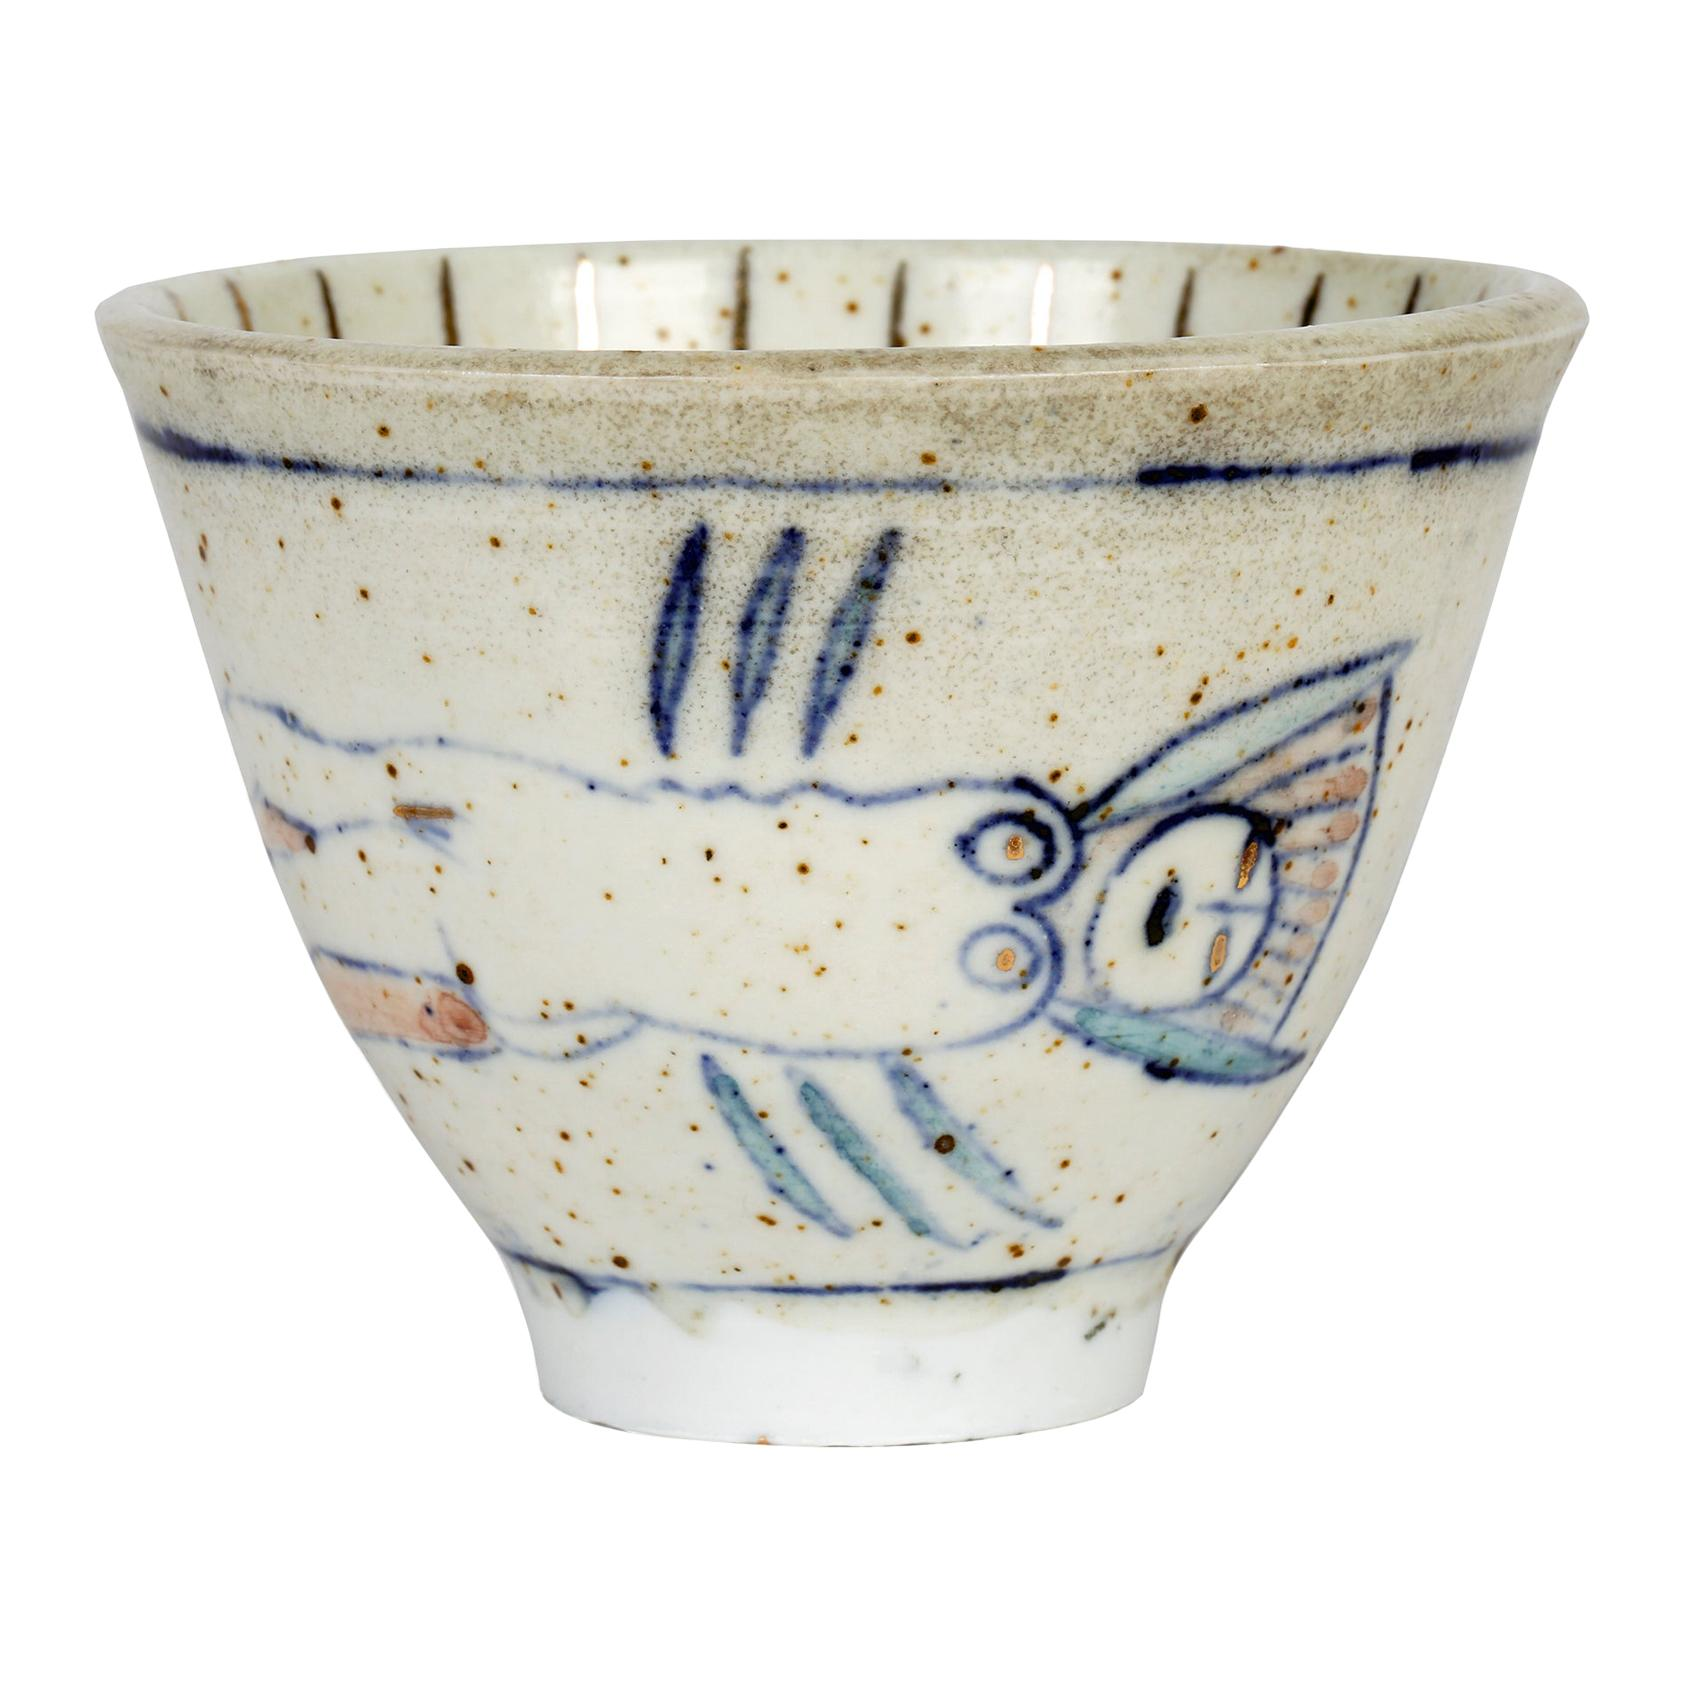 Eric James Mellon Studio Pottery Bowl Painted with Nude